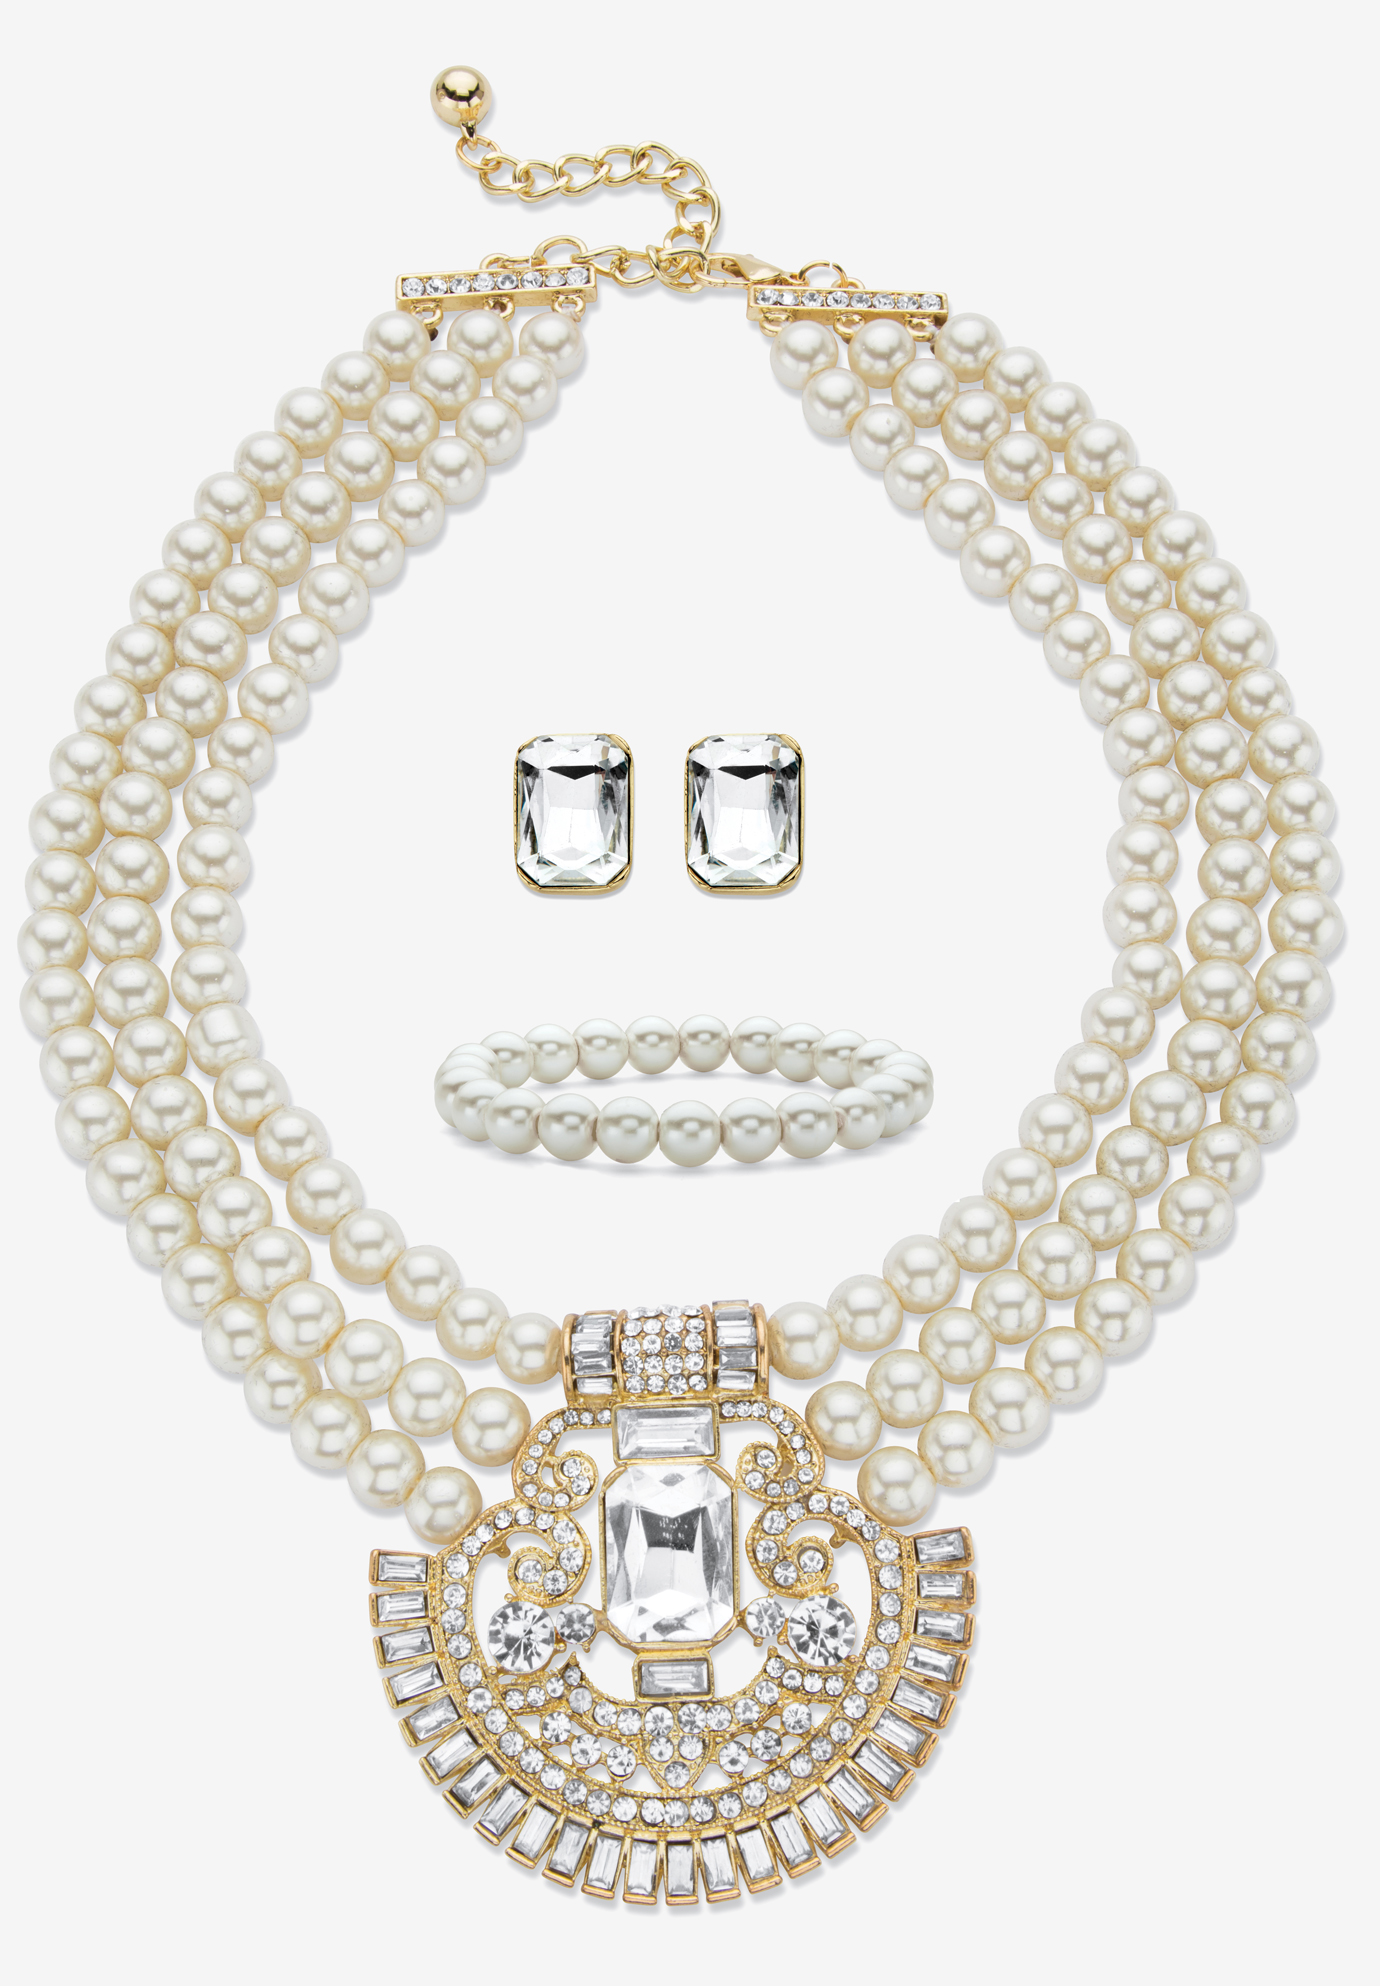 "Gold Tone Simulated Pearl Bib 17"" Necklace Set with Emerald Cut Crystals, DIAMOND"